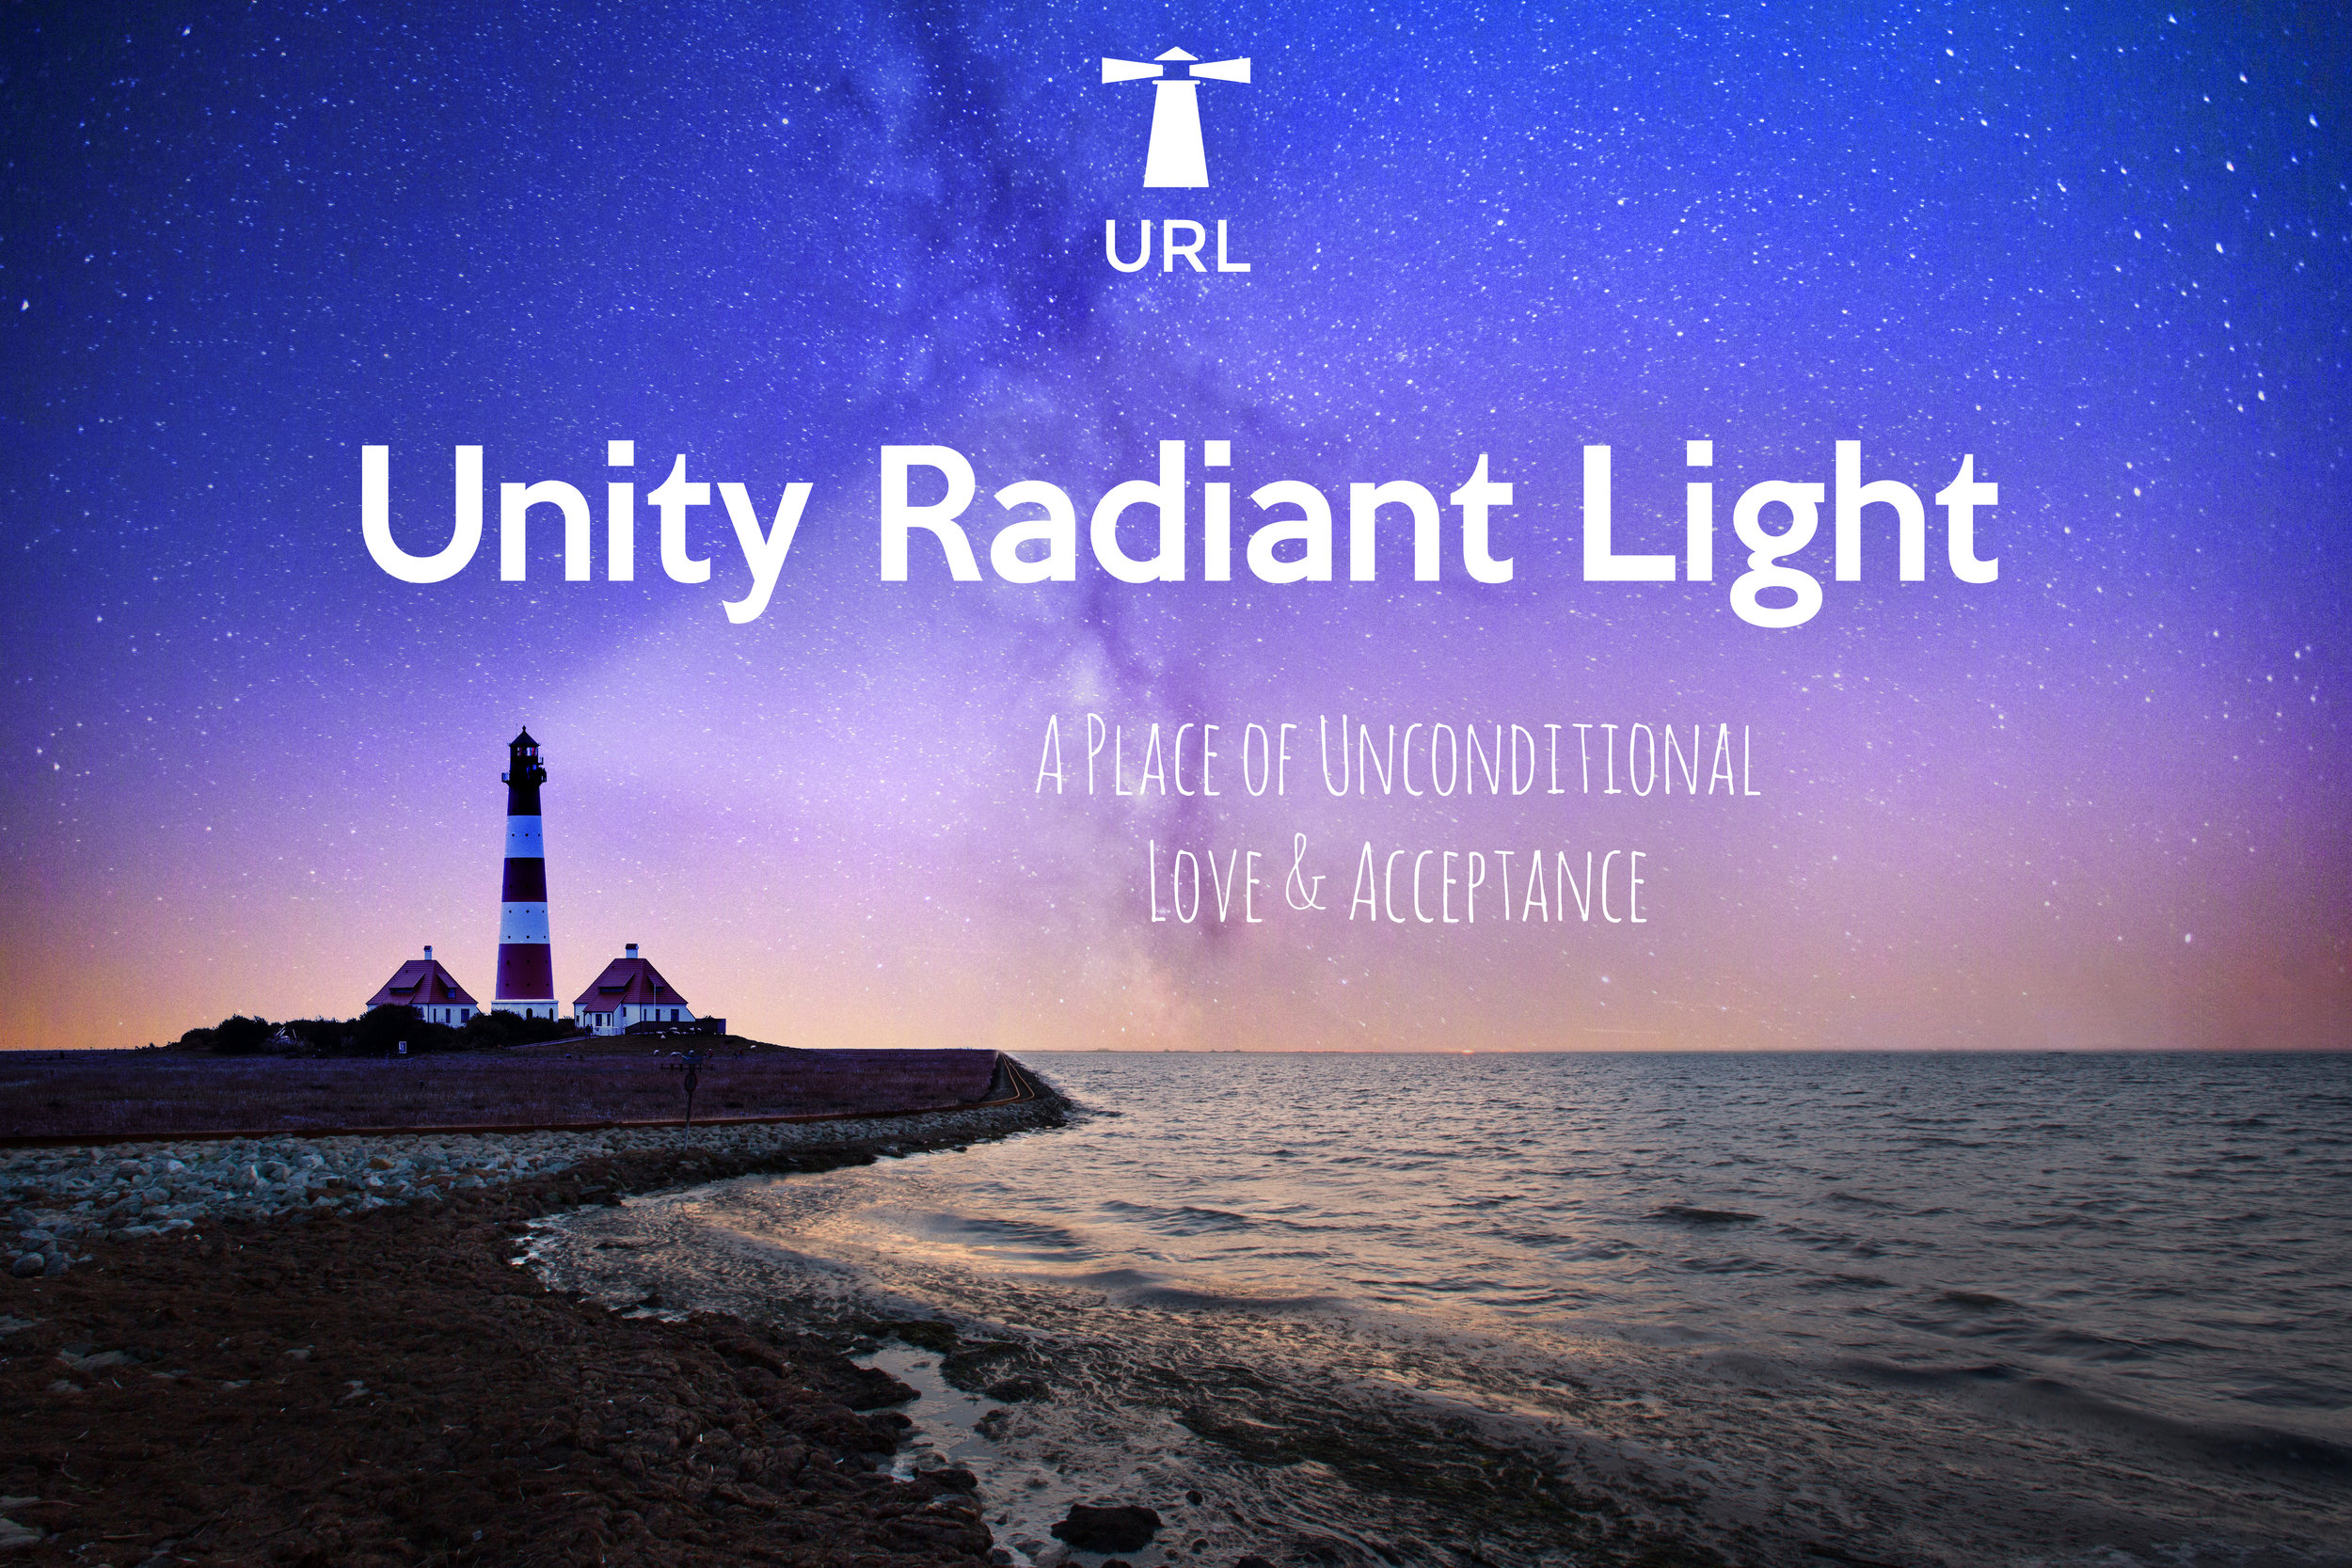 Unity Radiant Light Cover Image.jpg